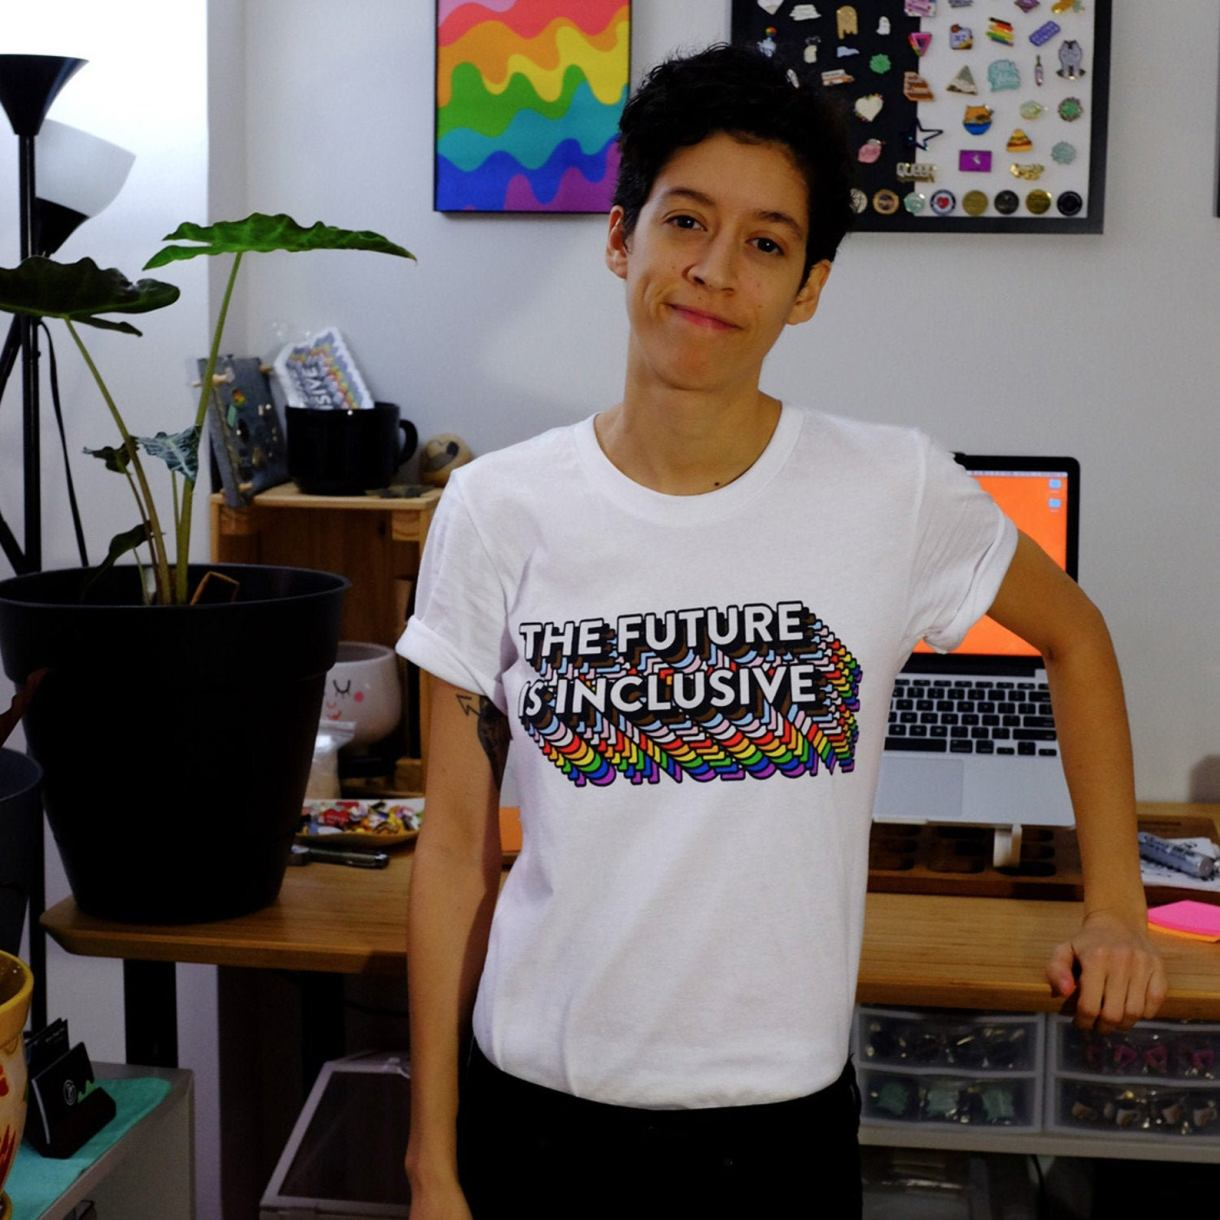 Model in an office wearing a white tee with the words THE FUTURE IS INCLUSIVE with rainbow shading